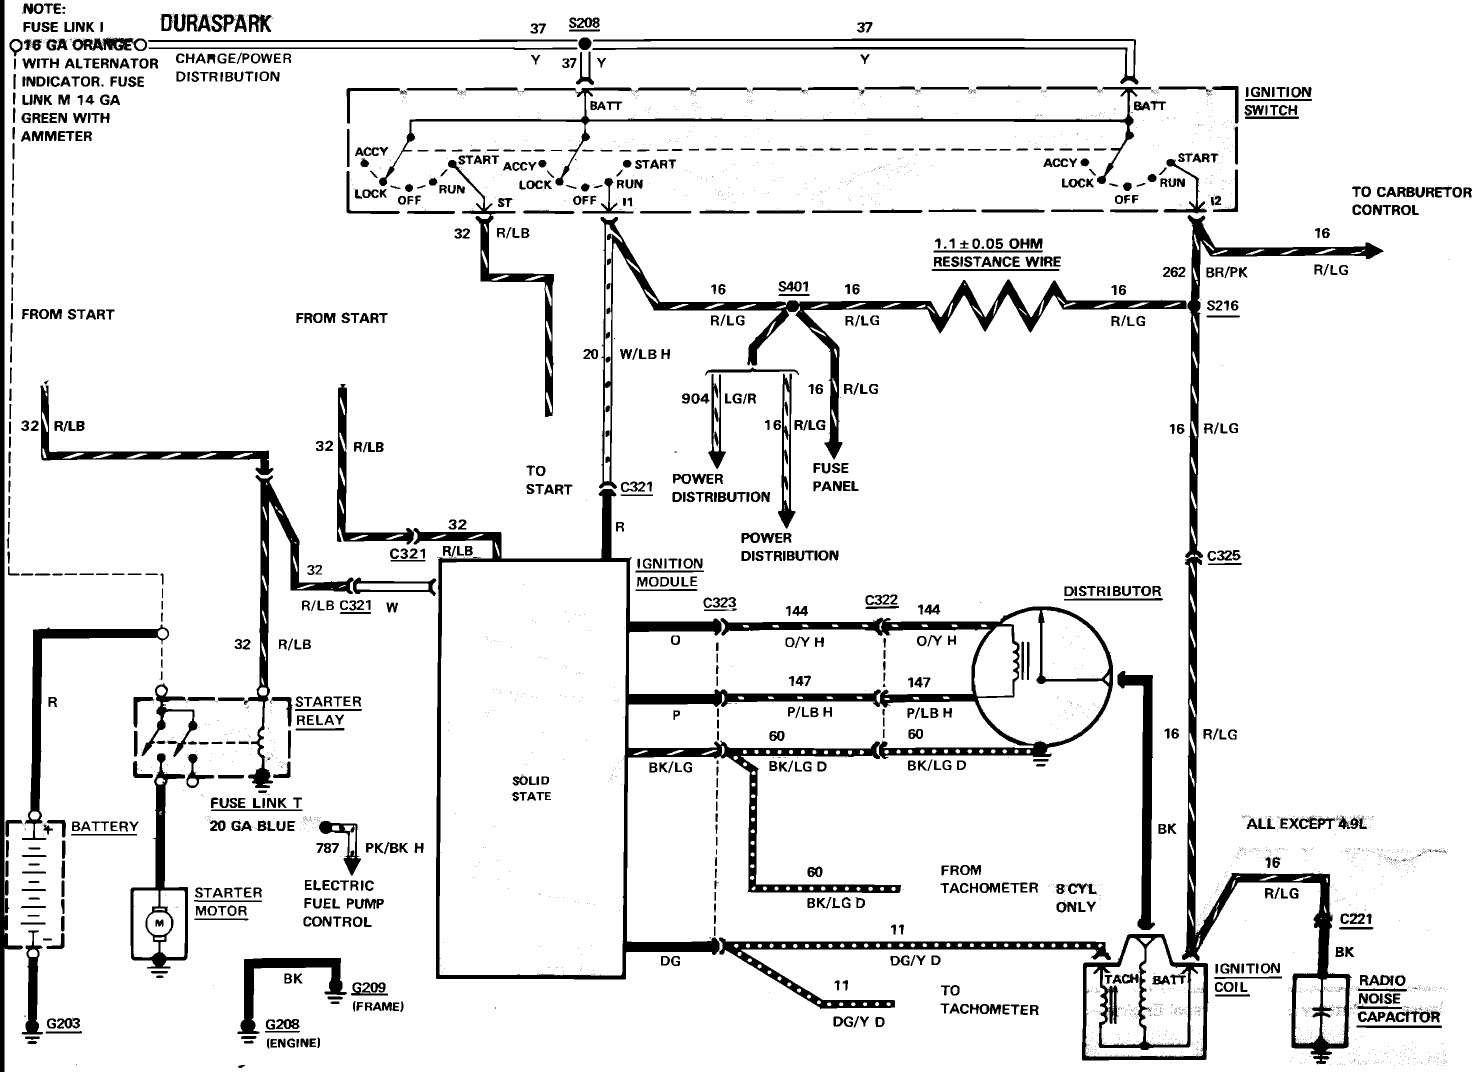 siemens micromaster 440 control wiring diagram issue 0803